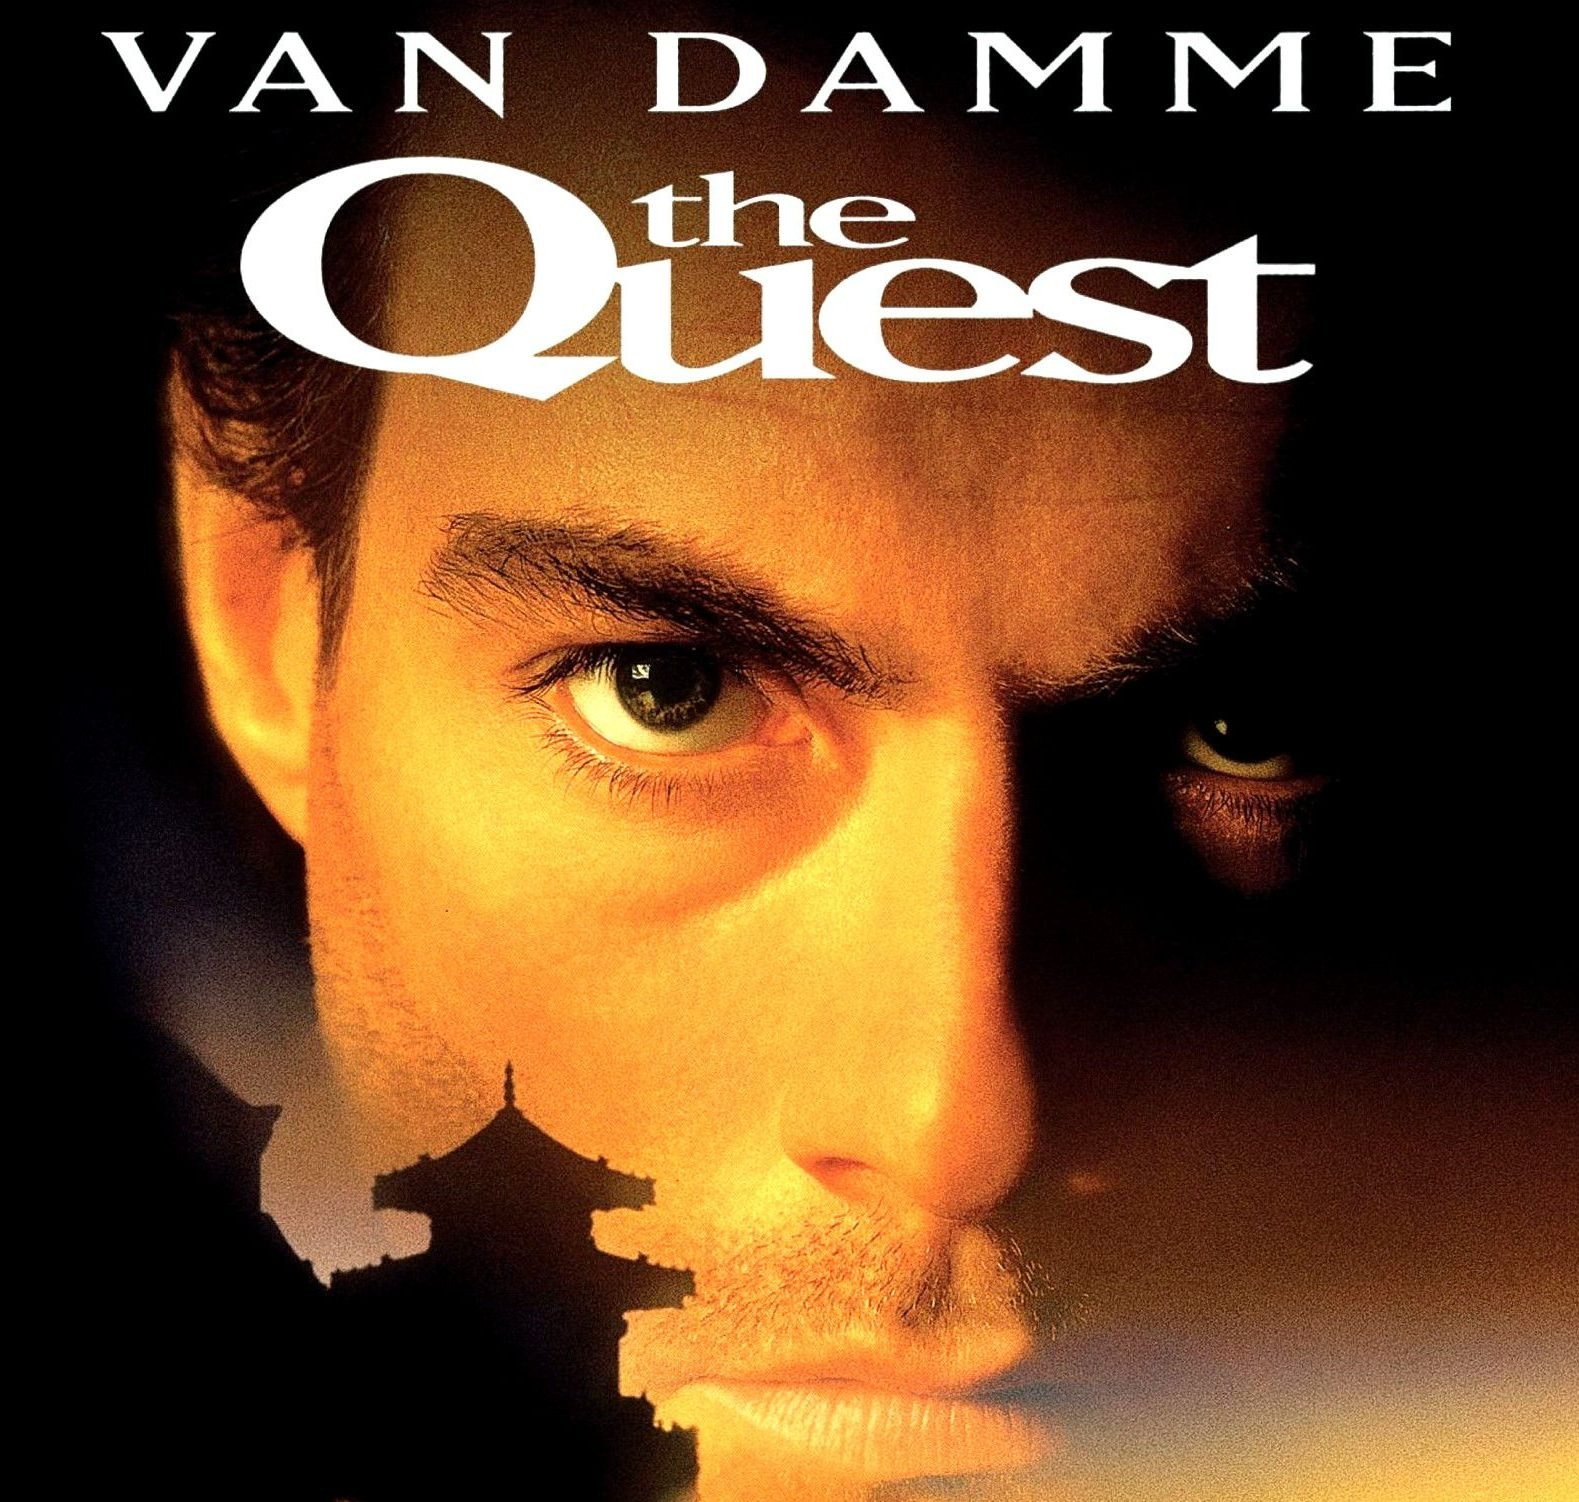 d68cdcbb0da909bd9b575aa253a68c62 e1621852819800 25 Things You Probably Didn't Know About Jean-Claude Van Damme